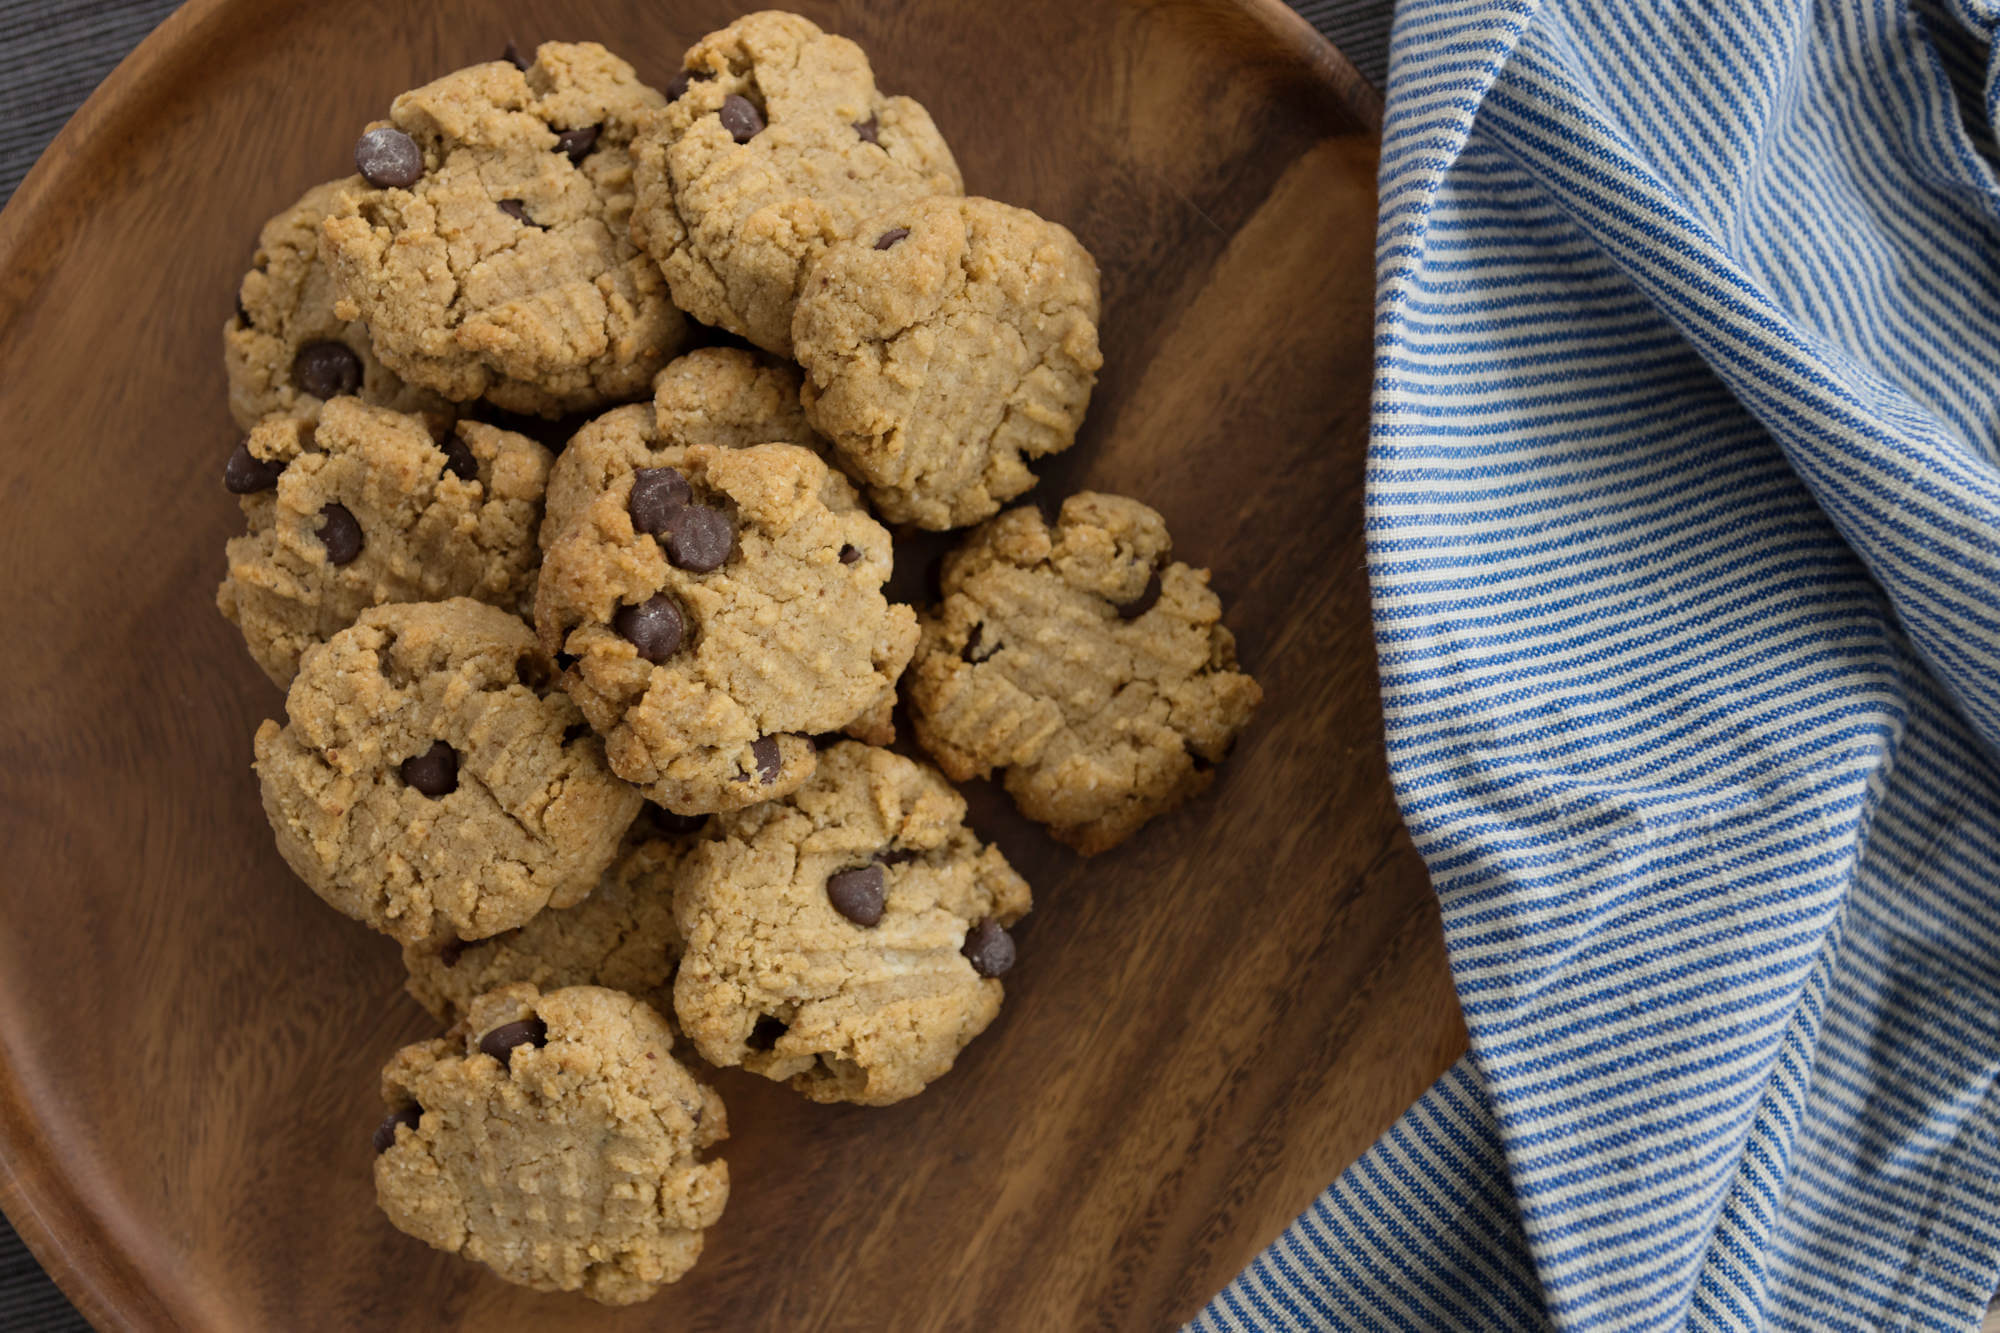 """Gluten Free Chocolate Chip Cookies"